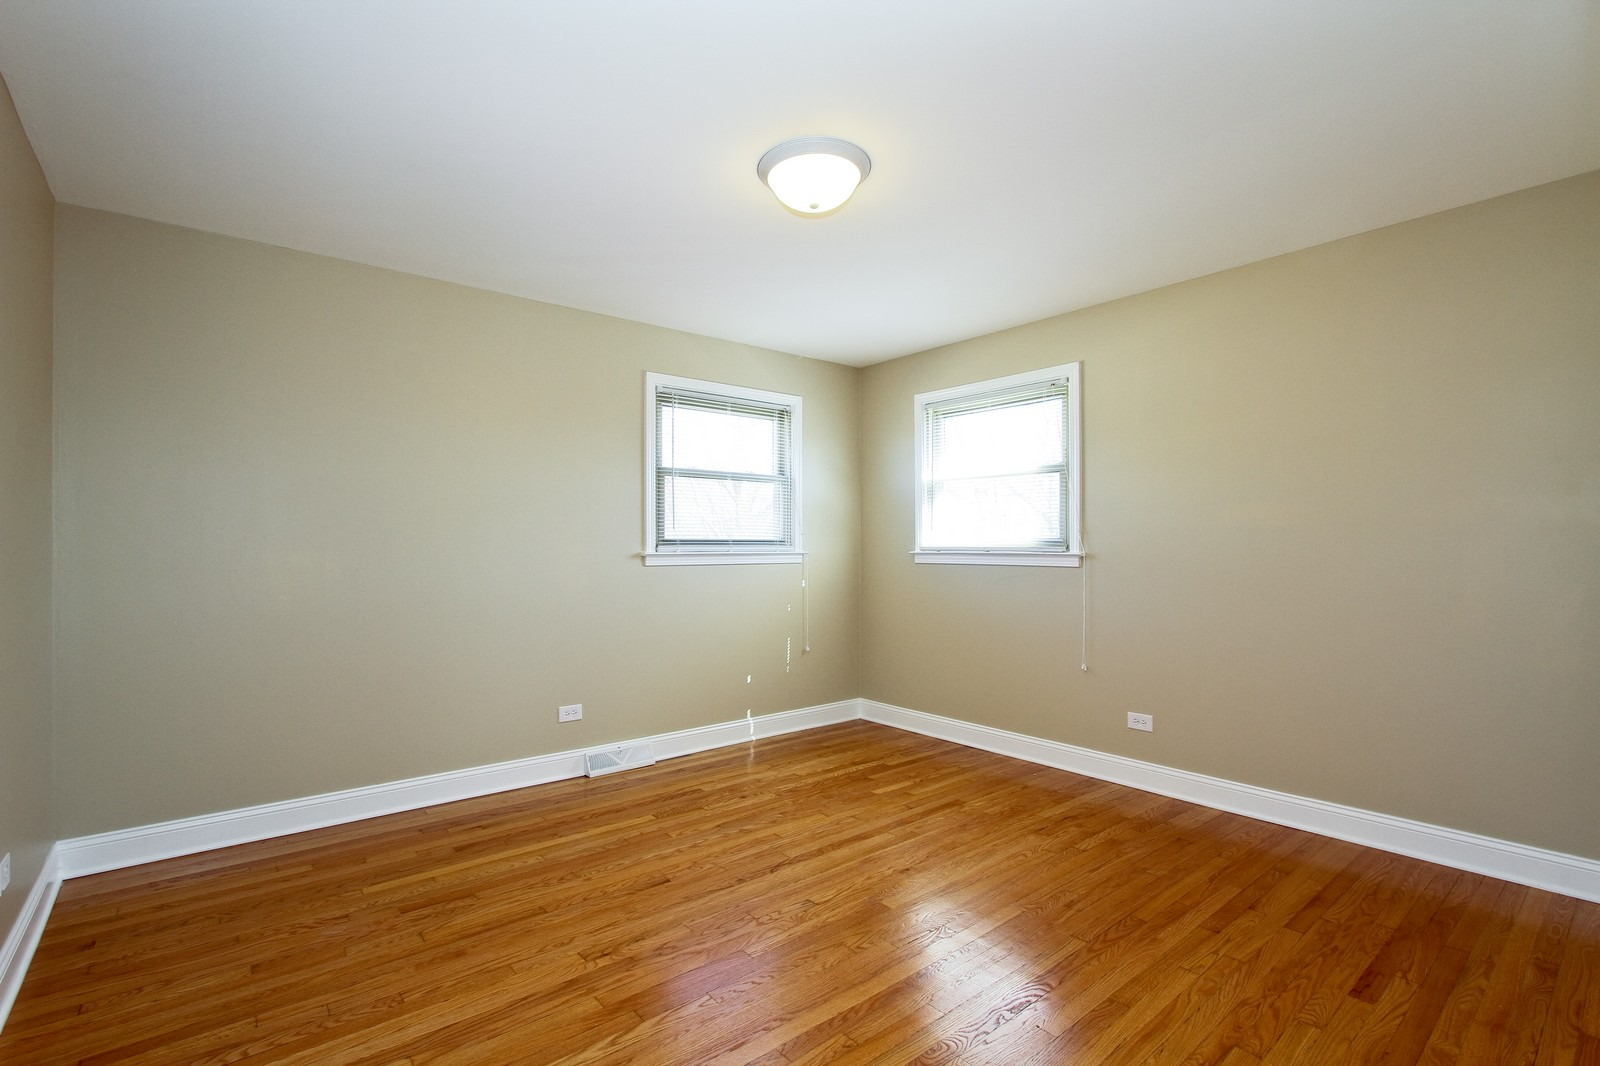 Real Estate Photography - 15435 Sunset, Dolton, IL, 60419 - Bedroom